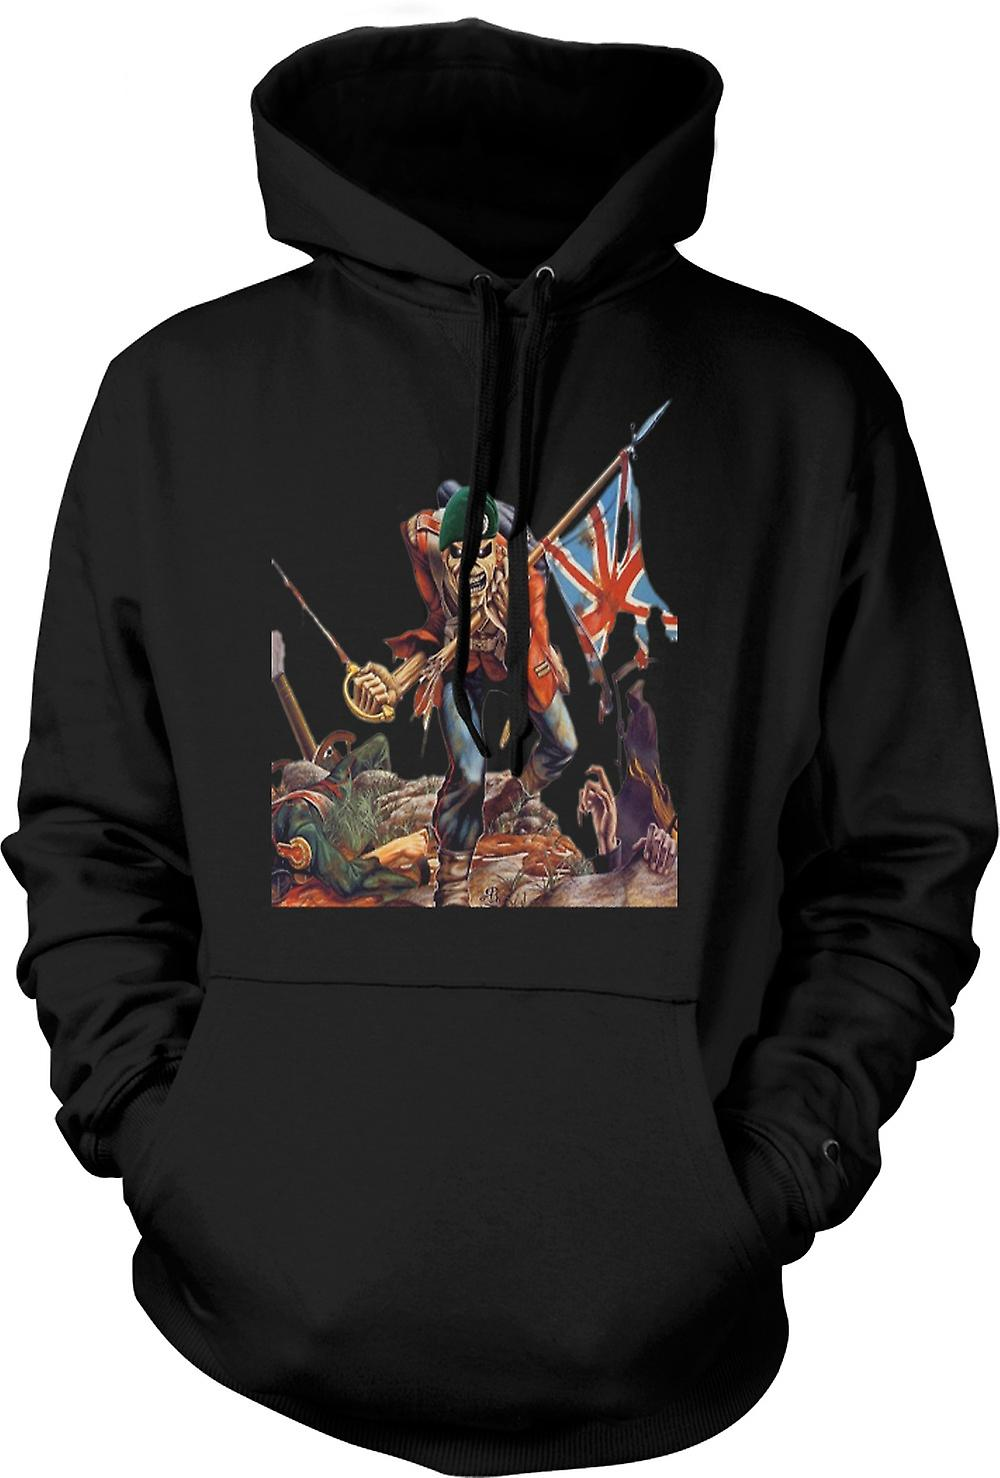 Mens Hoodie - The Trooper - Royal Marine Eddie